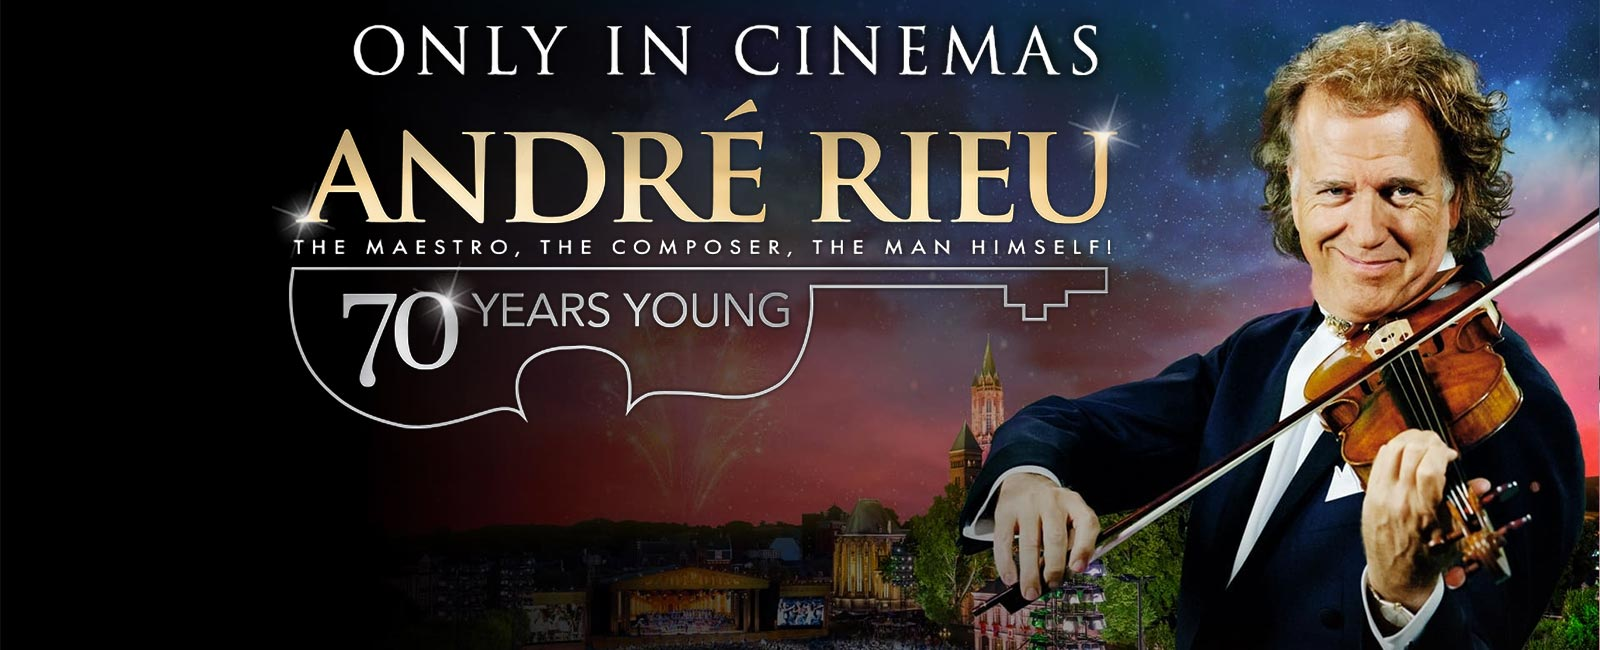 André Rieu 70 Years Young